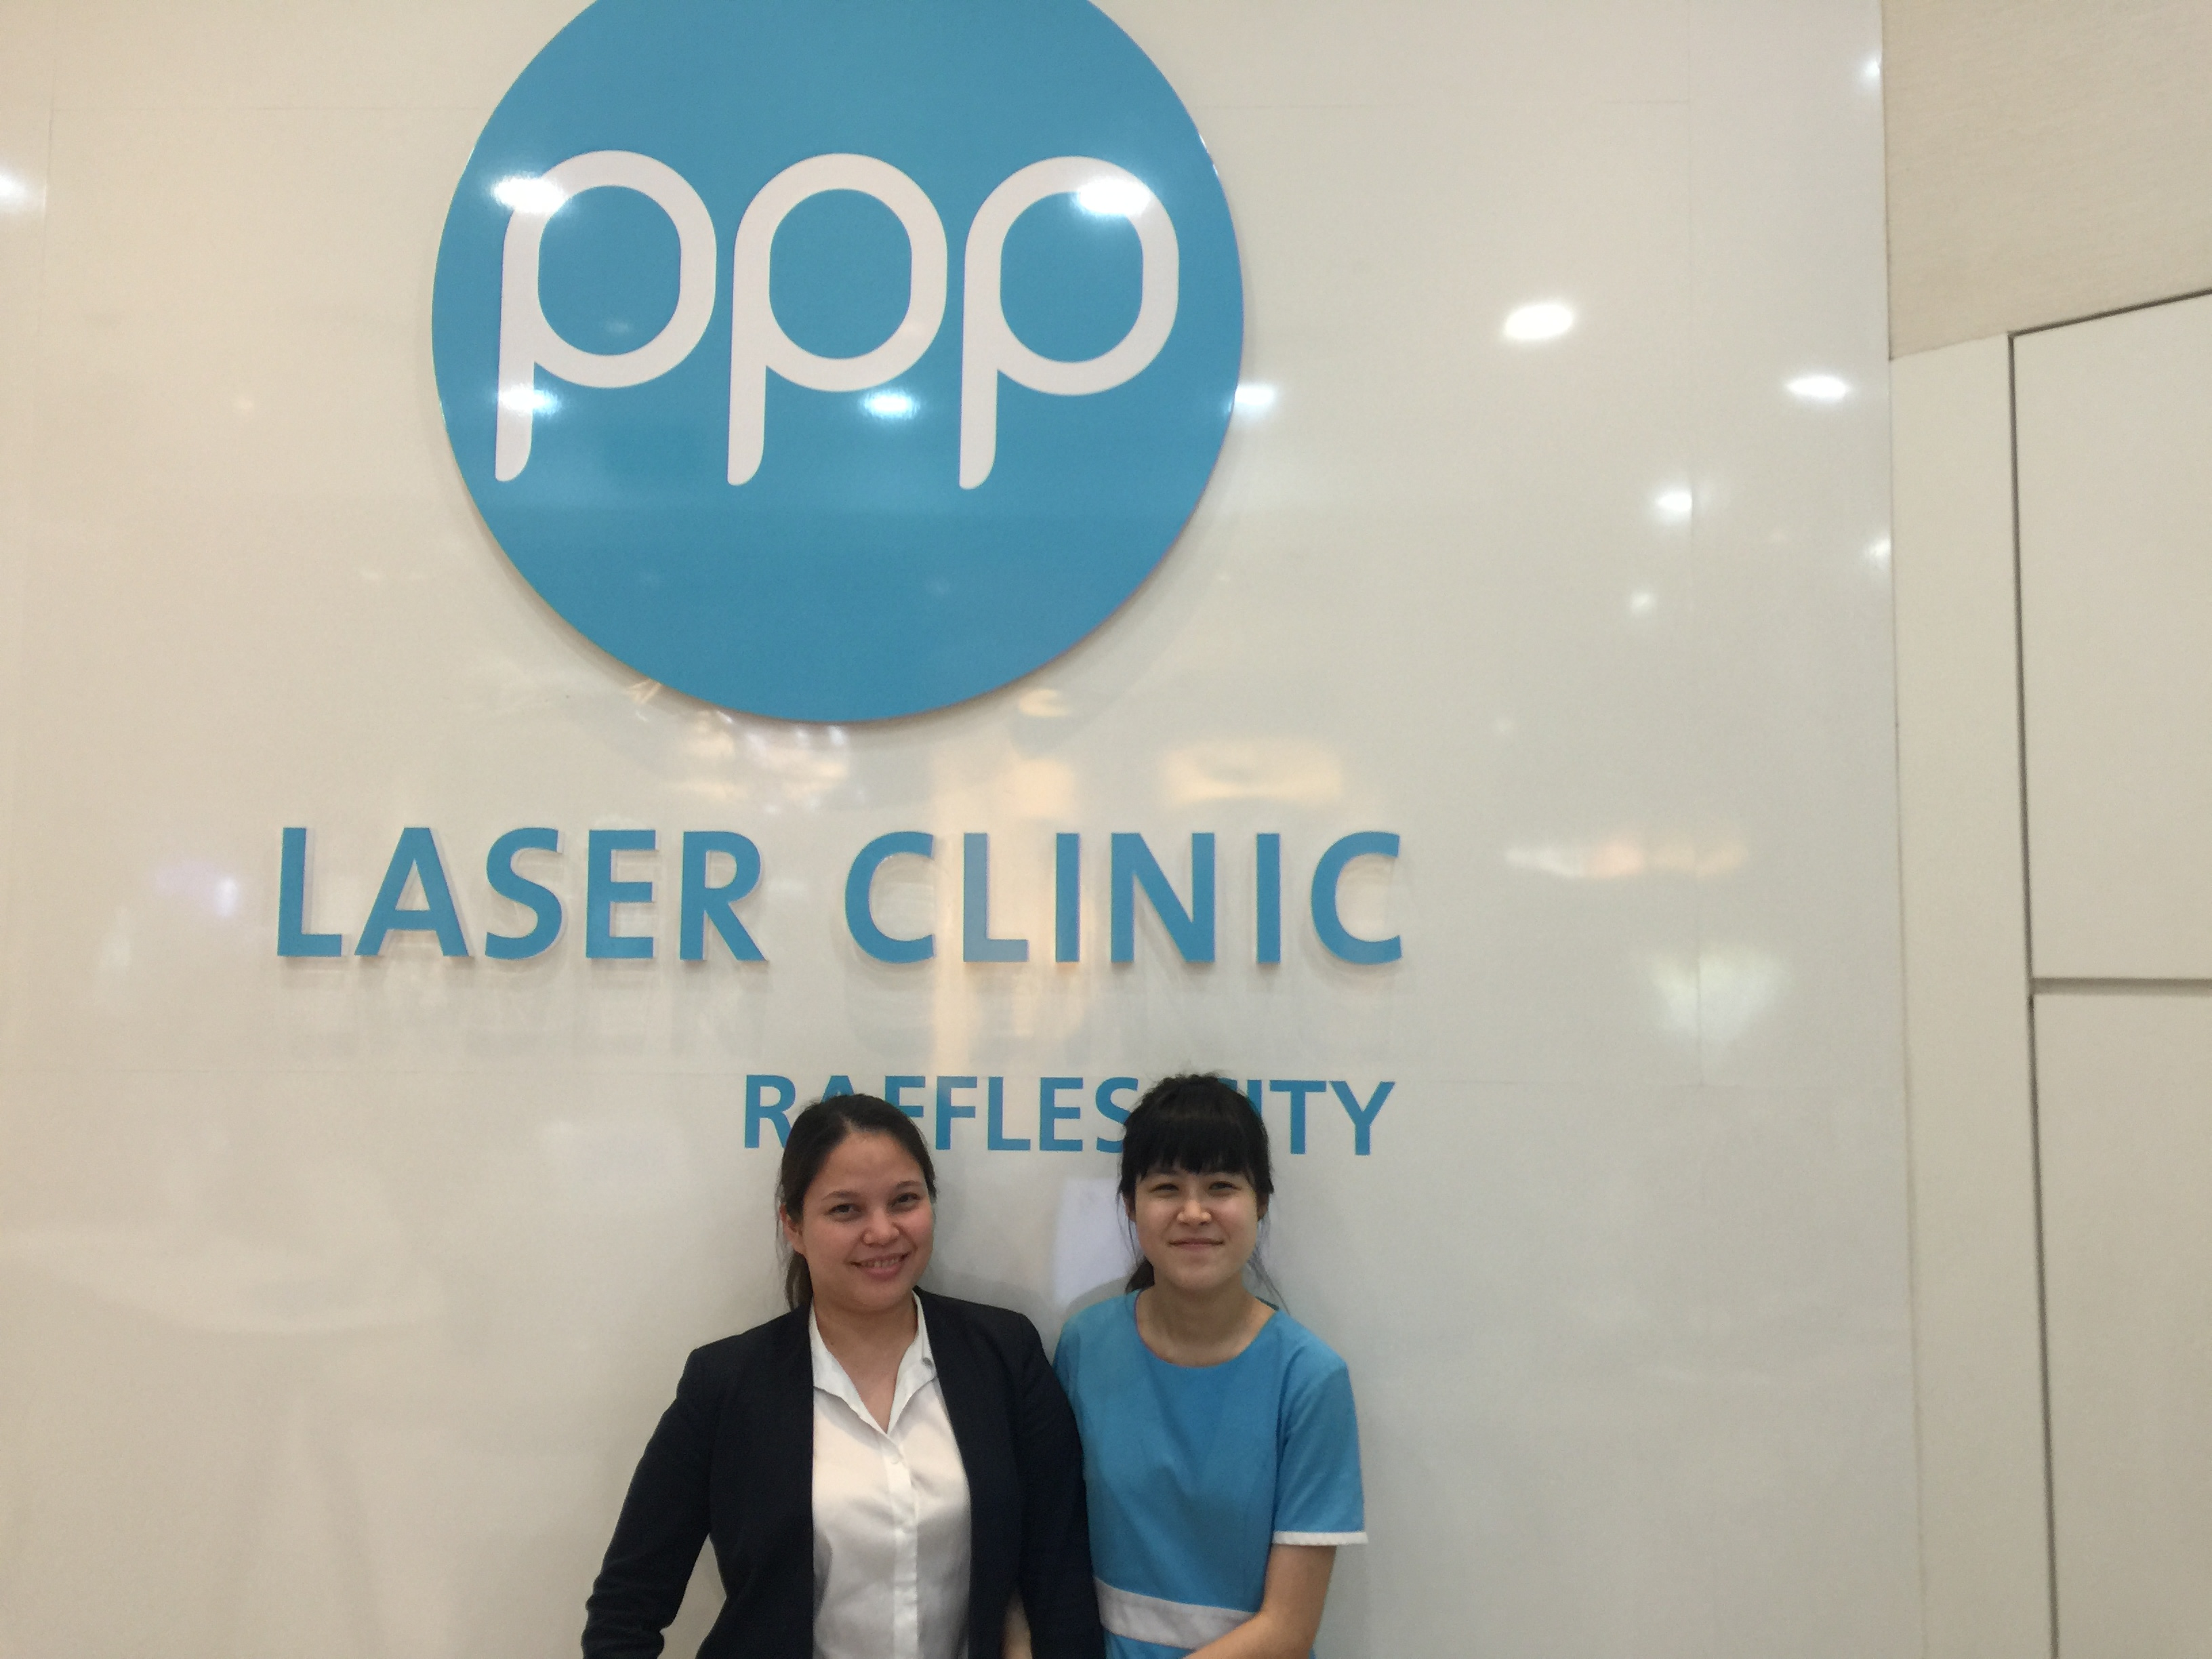 ppp laser clinic singapore review